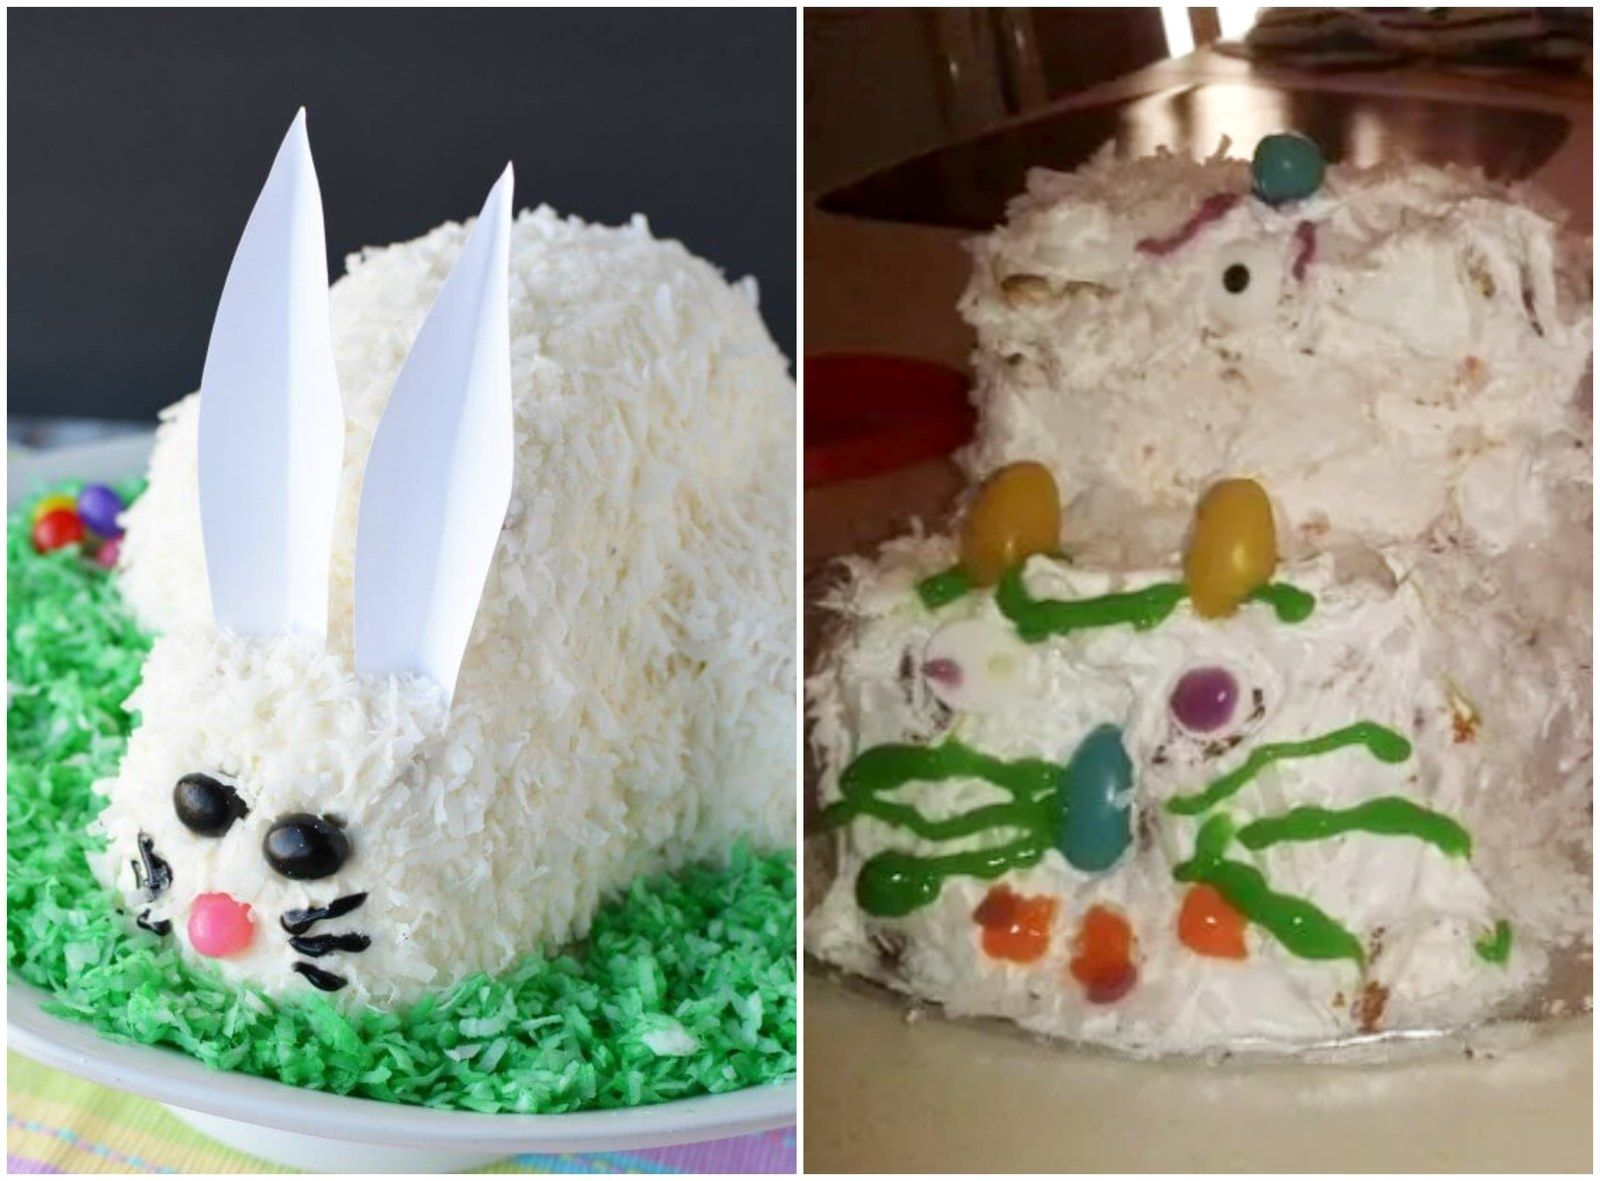 19 Pinterest Cake Fails That Are Just Begging To Be Laughed At